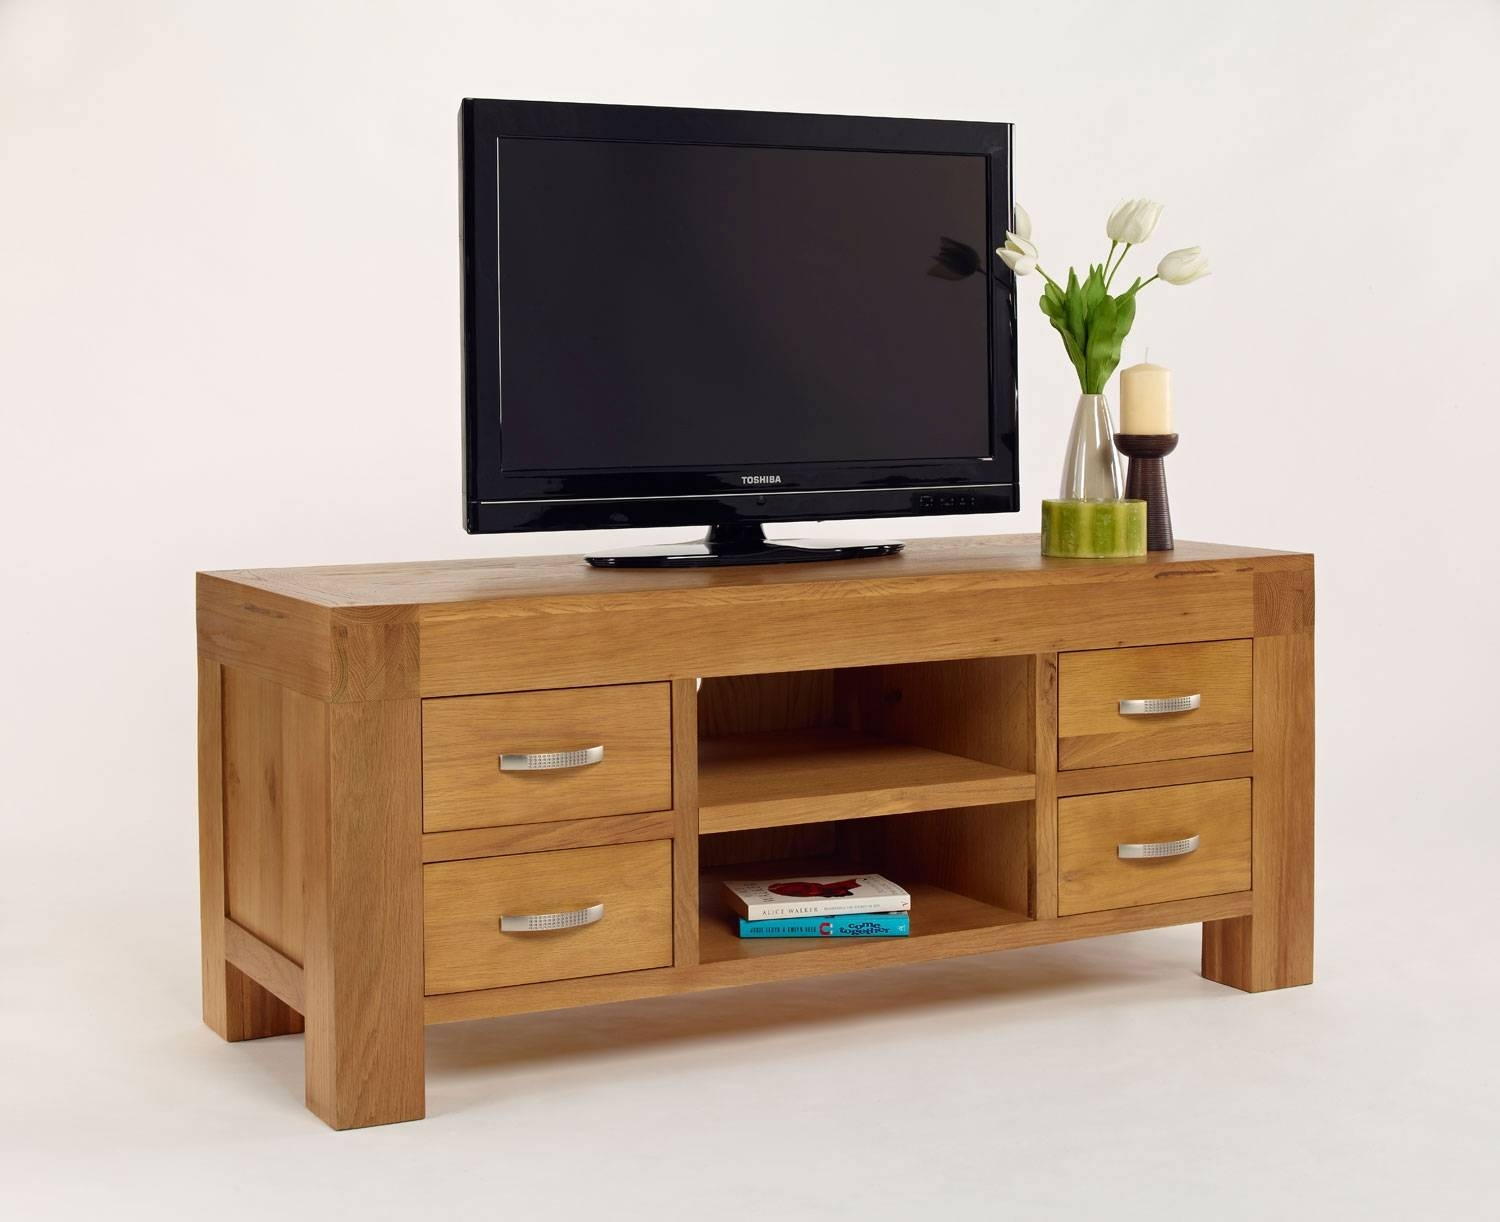 Santana Blonde Oak Tv Unit - 4 Drawers. Free Delivery in Tv Drawer Units (Image 10 of 15)